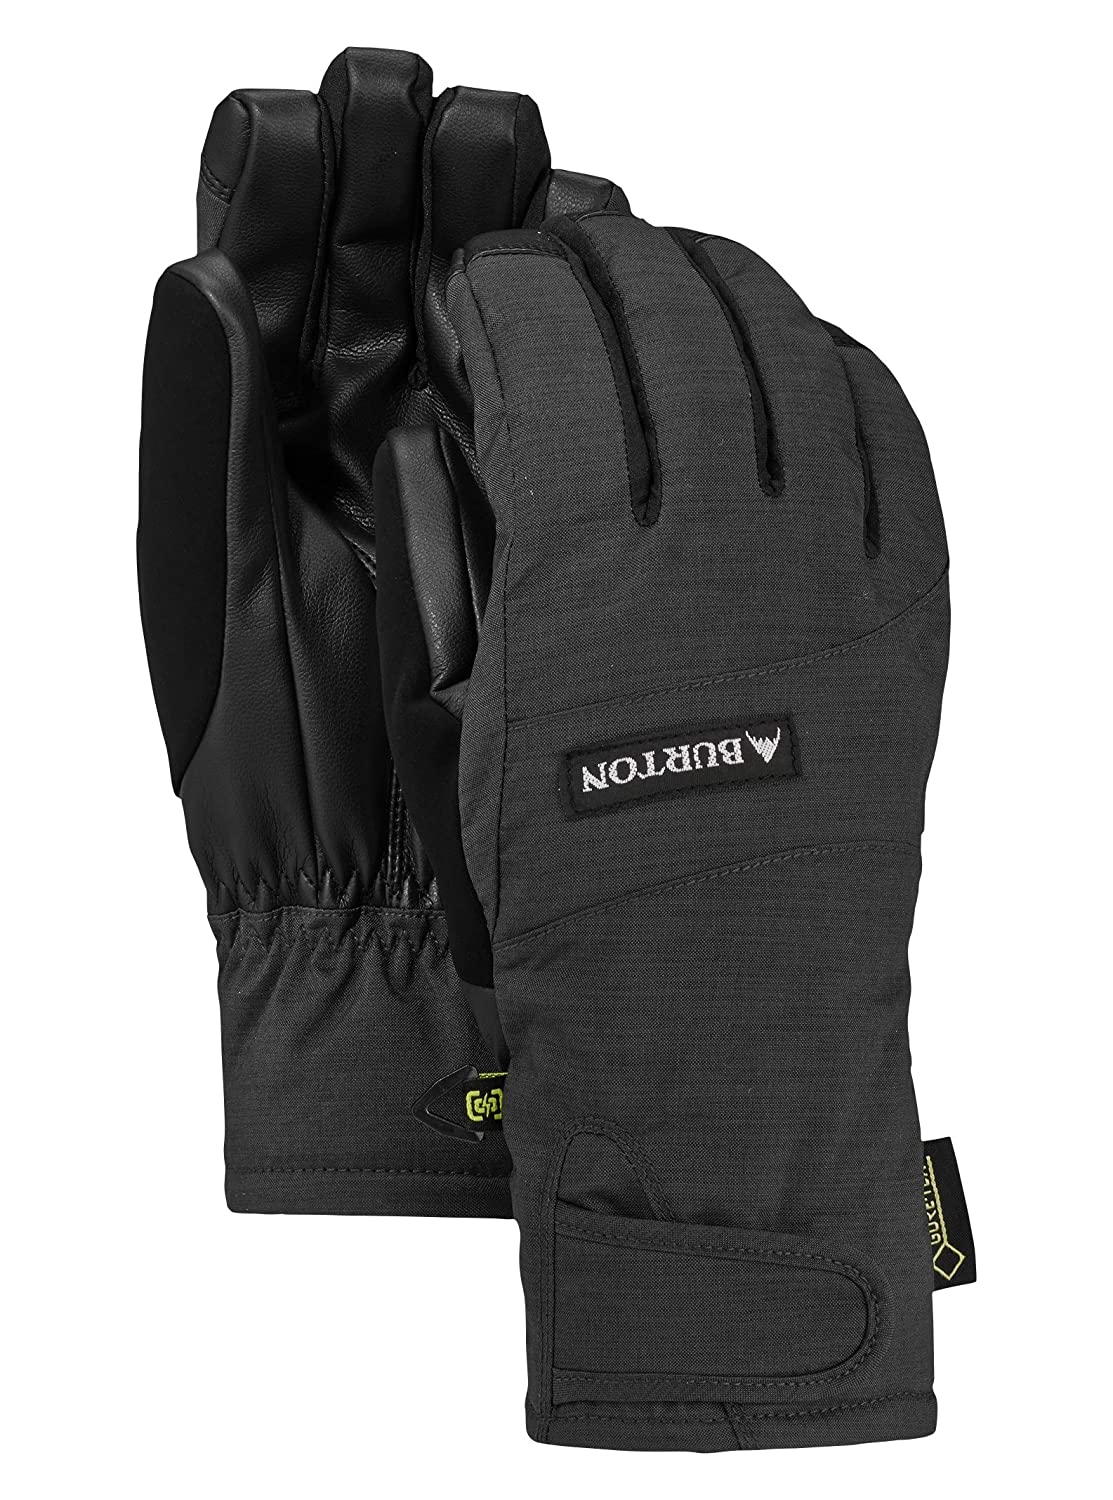 Burton Women's Reverb Gore-Tex Gloves, True Black, Medium 103321